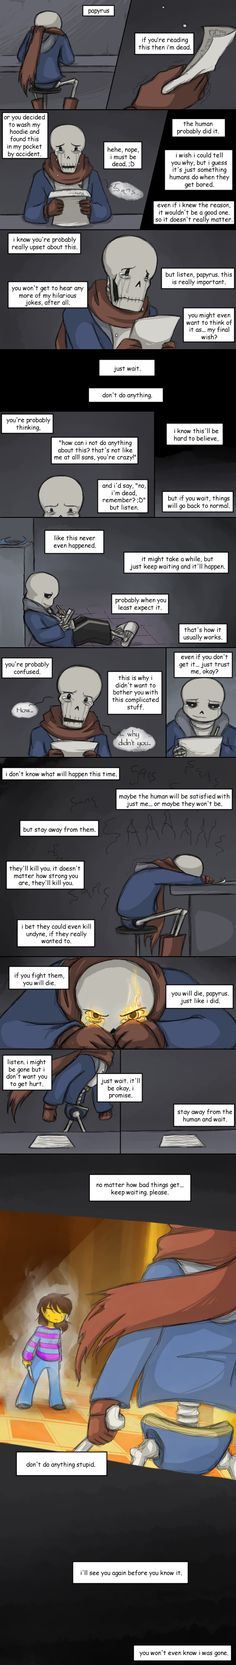 [UNDERTALE SPOILERS] it'll be okay by zarla.deviantart.com on @deviantart AU where Papyrus is the last man standing.